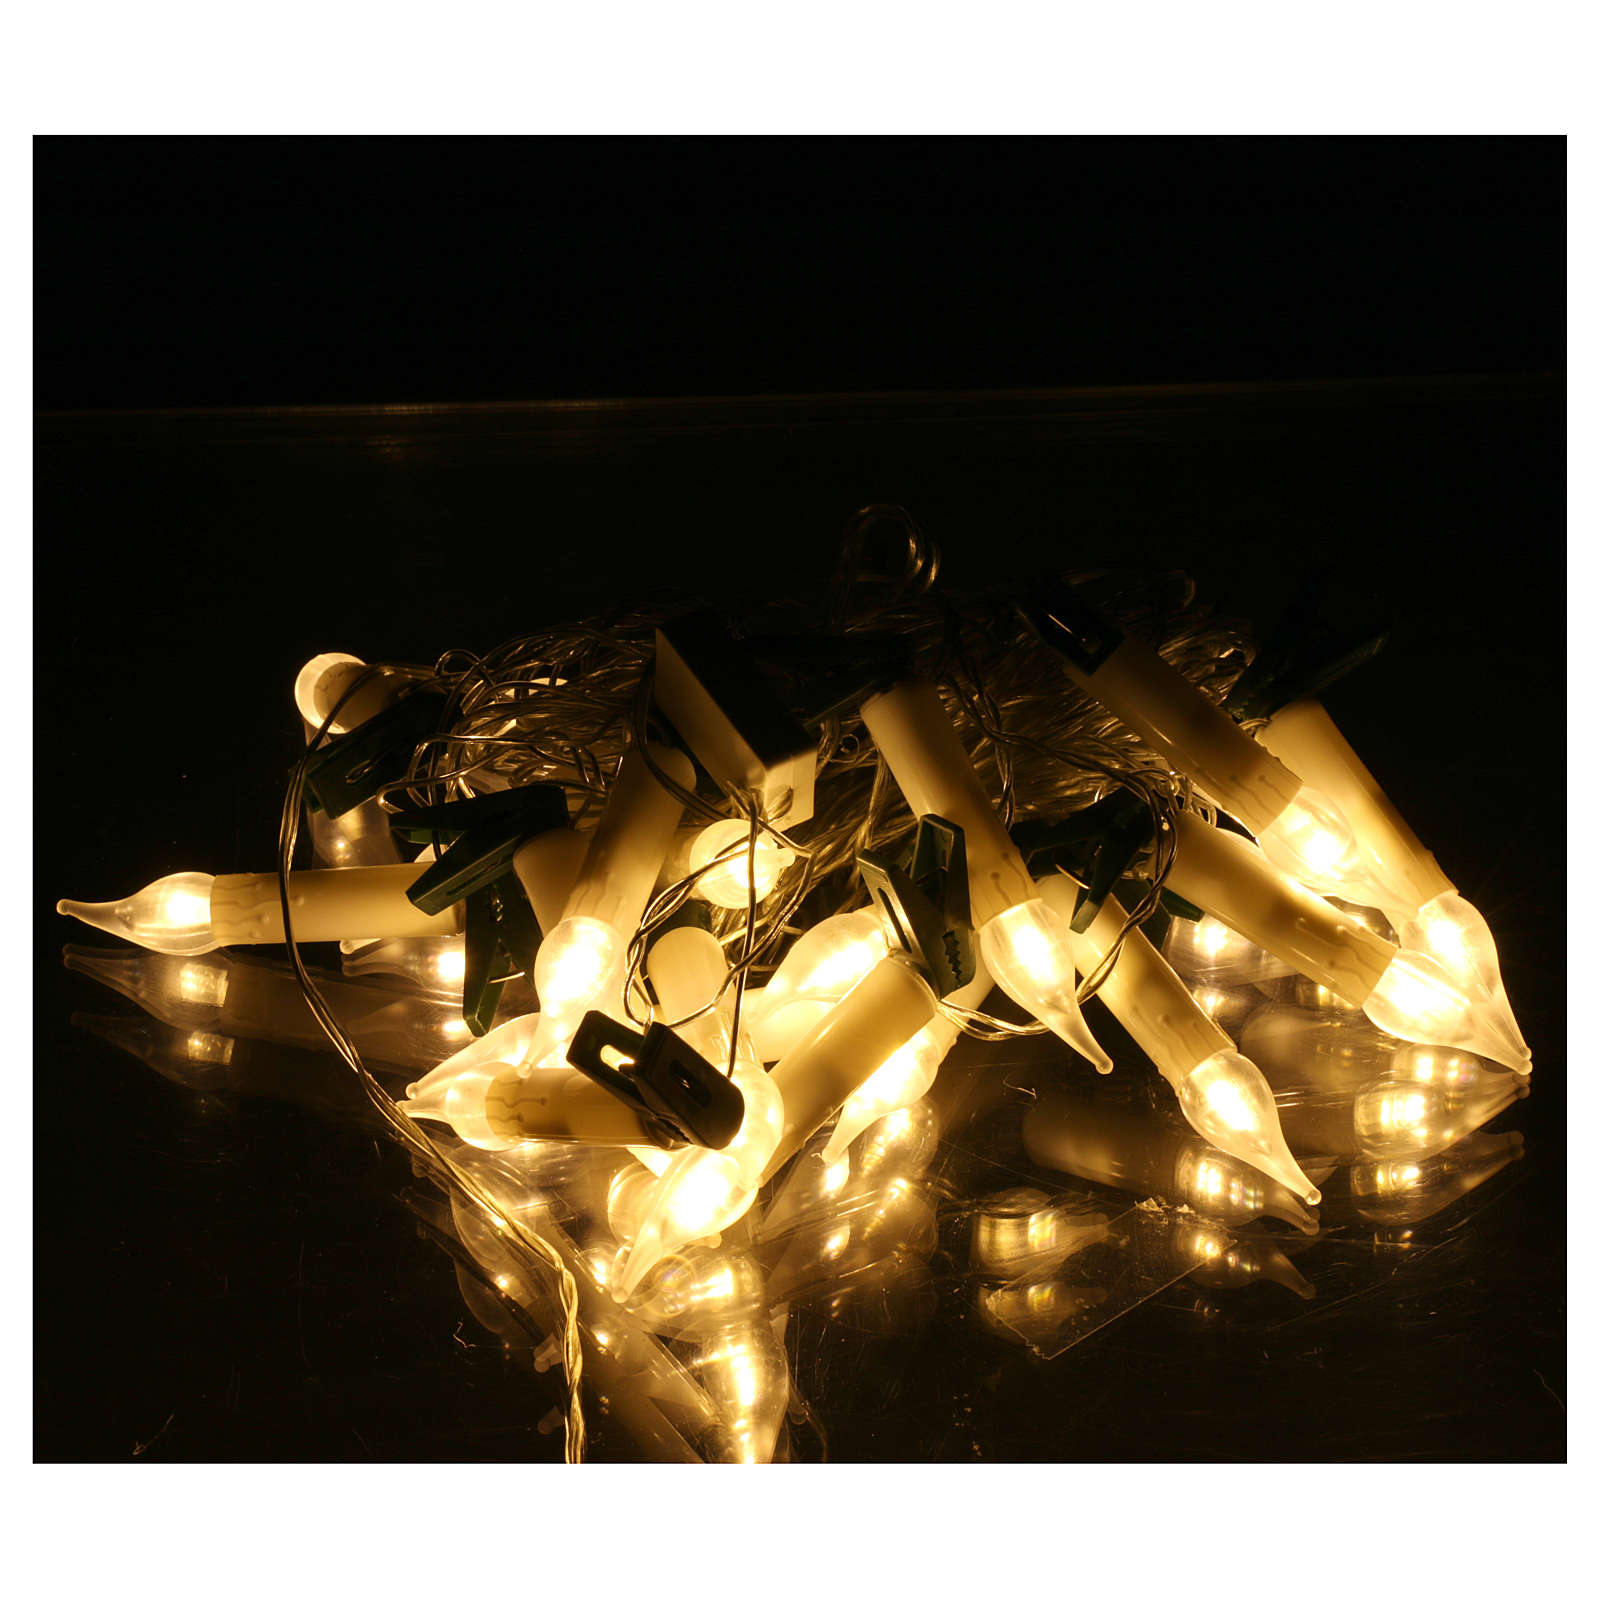 Candle light cable 20 leds warm white internal and external use 3